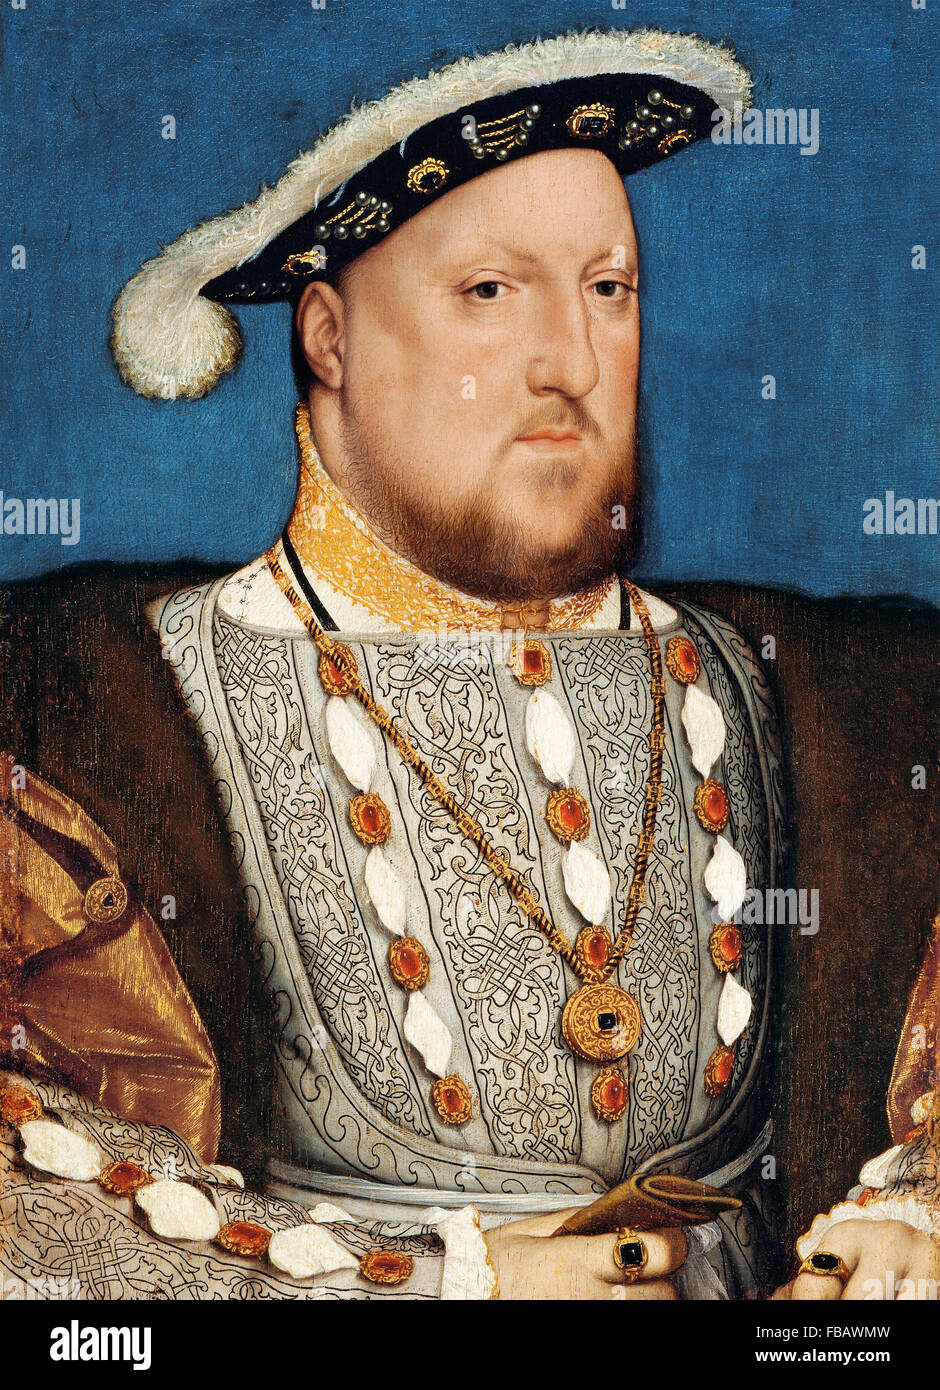 King Henry VIII, portrait by the workshop of Hans Holbein the Younger, c 1537 - Stock Image